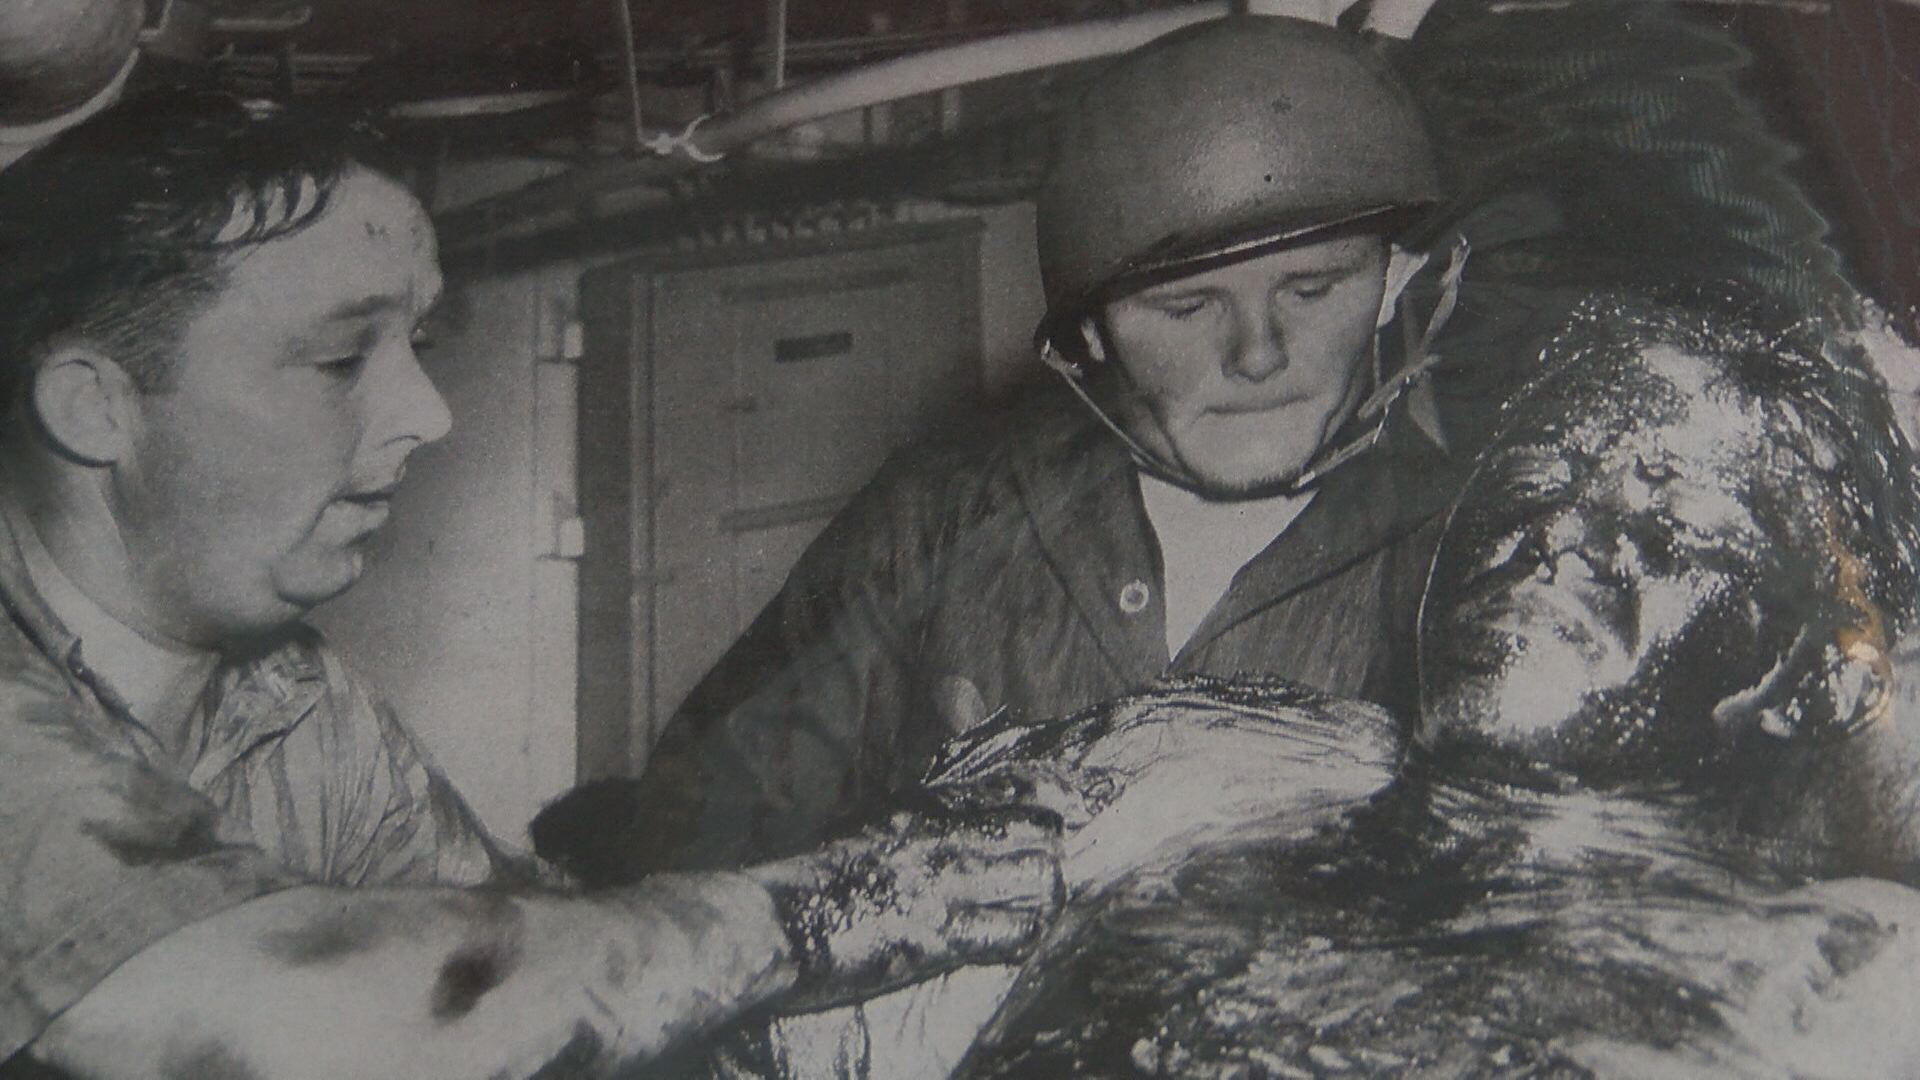 A photo of servicemen caring for one of the survivors, who is covered in oil from the ship. (Thomas Gray/WCYB)